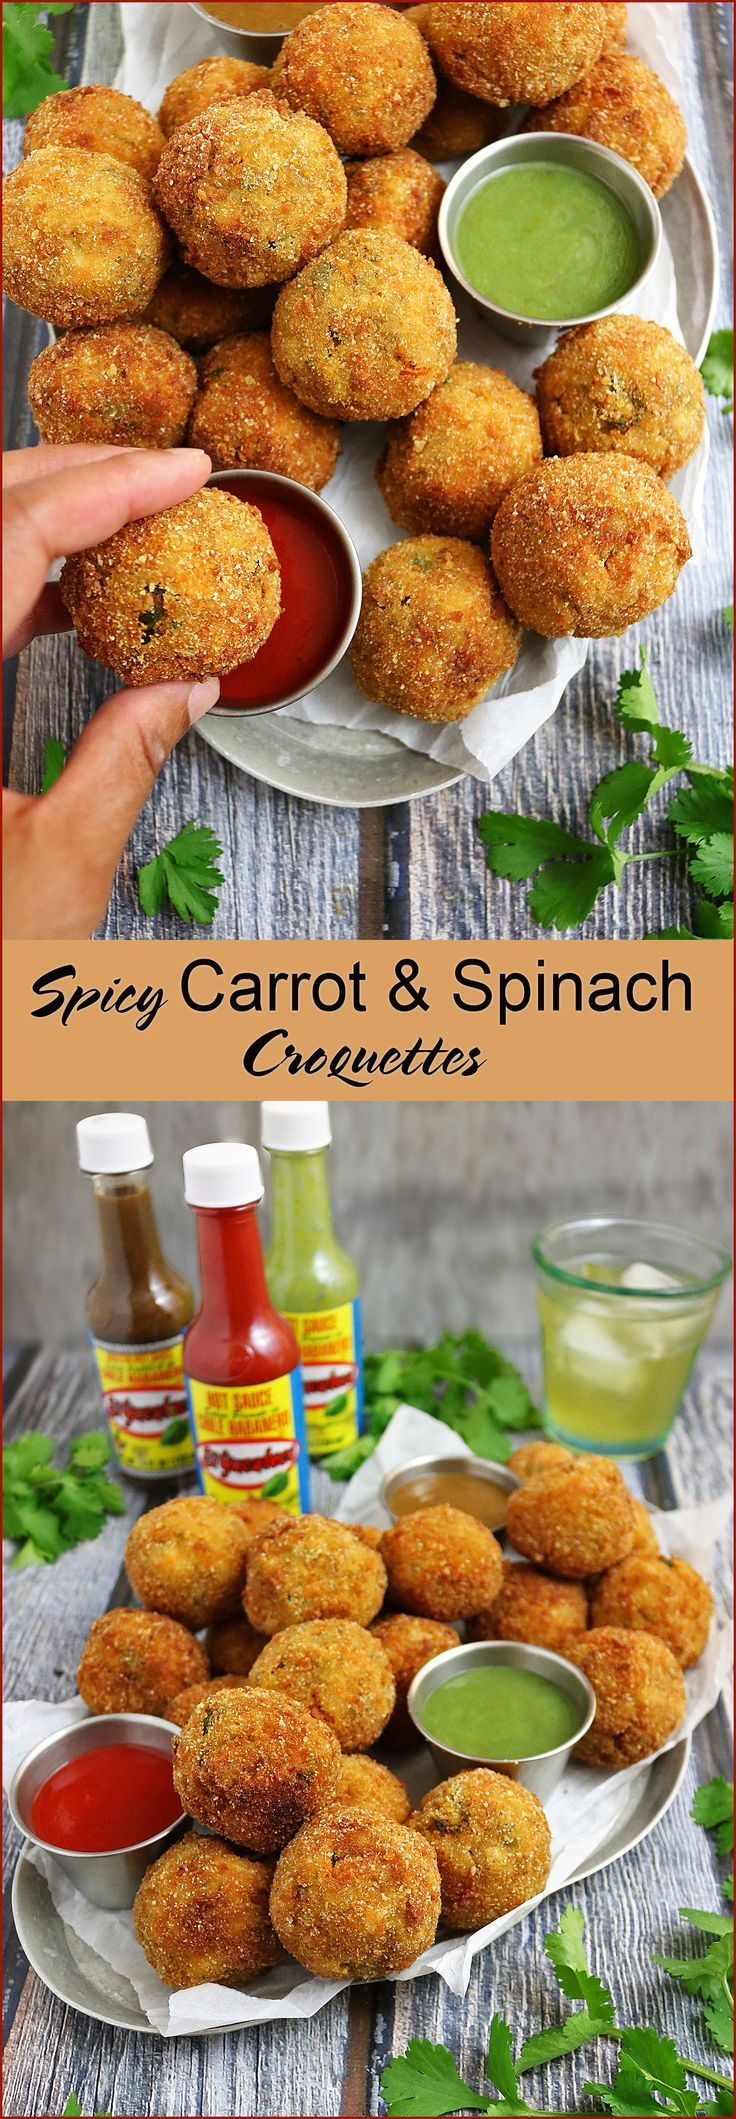 Spicy Carrot Spinach Croquettes with El Yucateco®️️ Red Chile Habanero and El Yucateco®️️ XXX Hot Kutbil-ik - perfect appetizers for fall gatherings! #ad #FieldToBottle #KingofFlavor